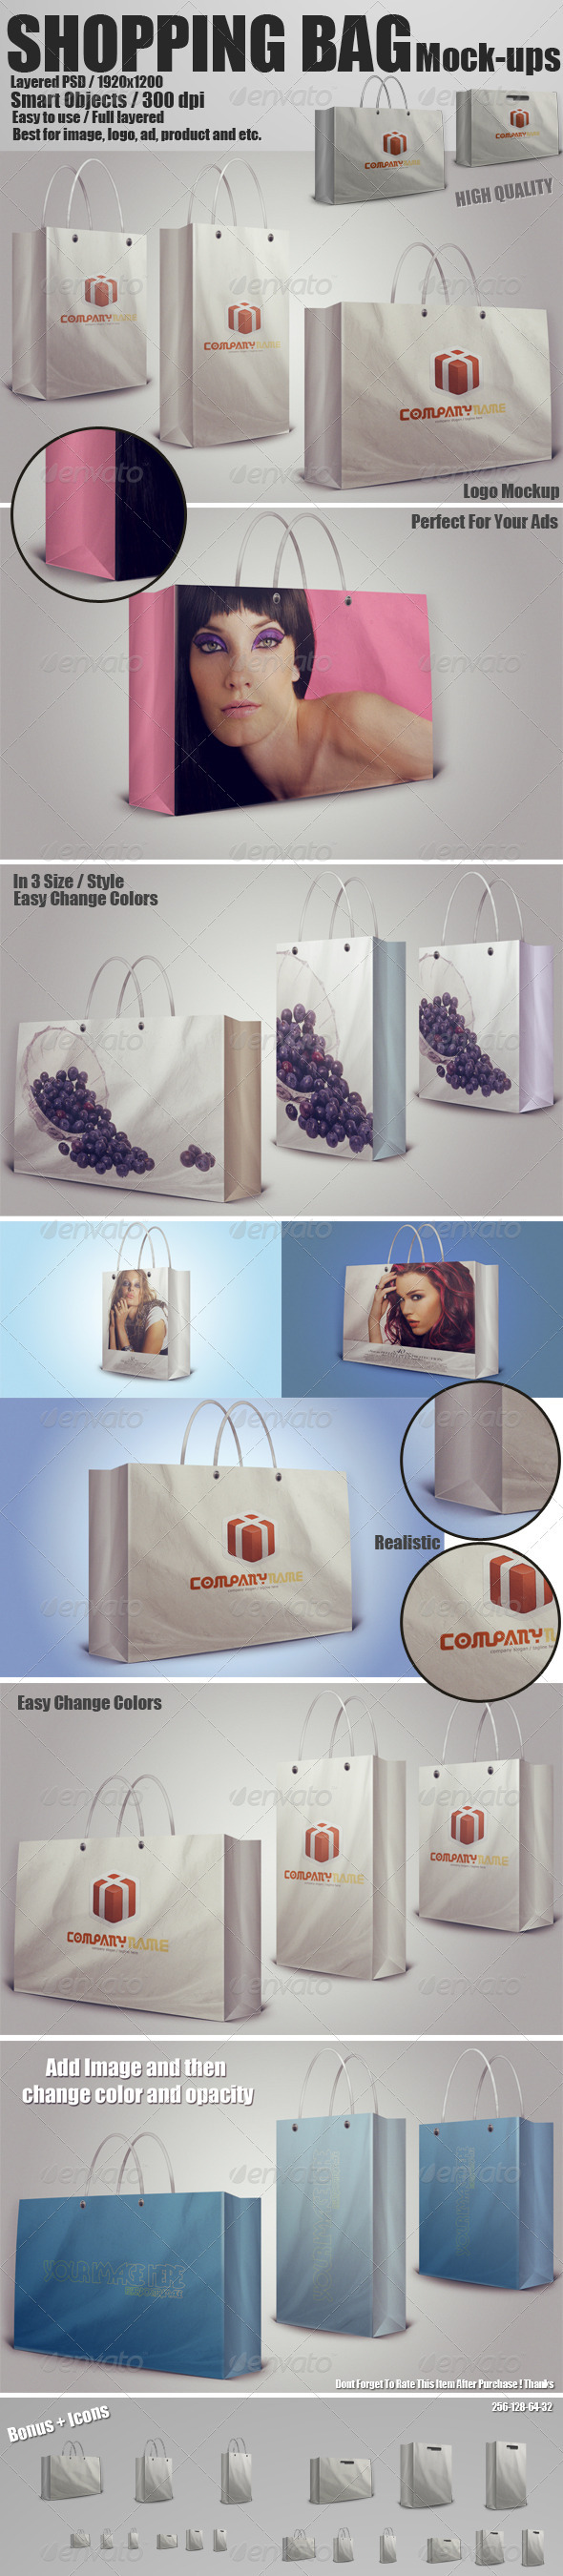 GraphicRiver Shopping Bag Mockups PSD 2418740